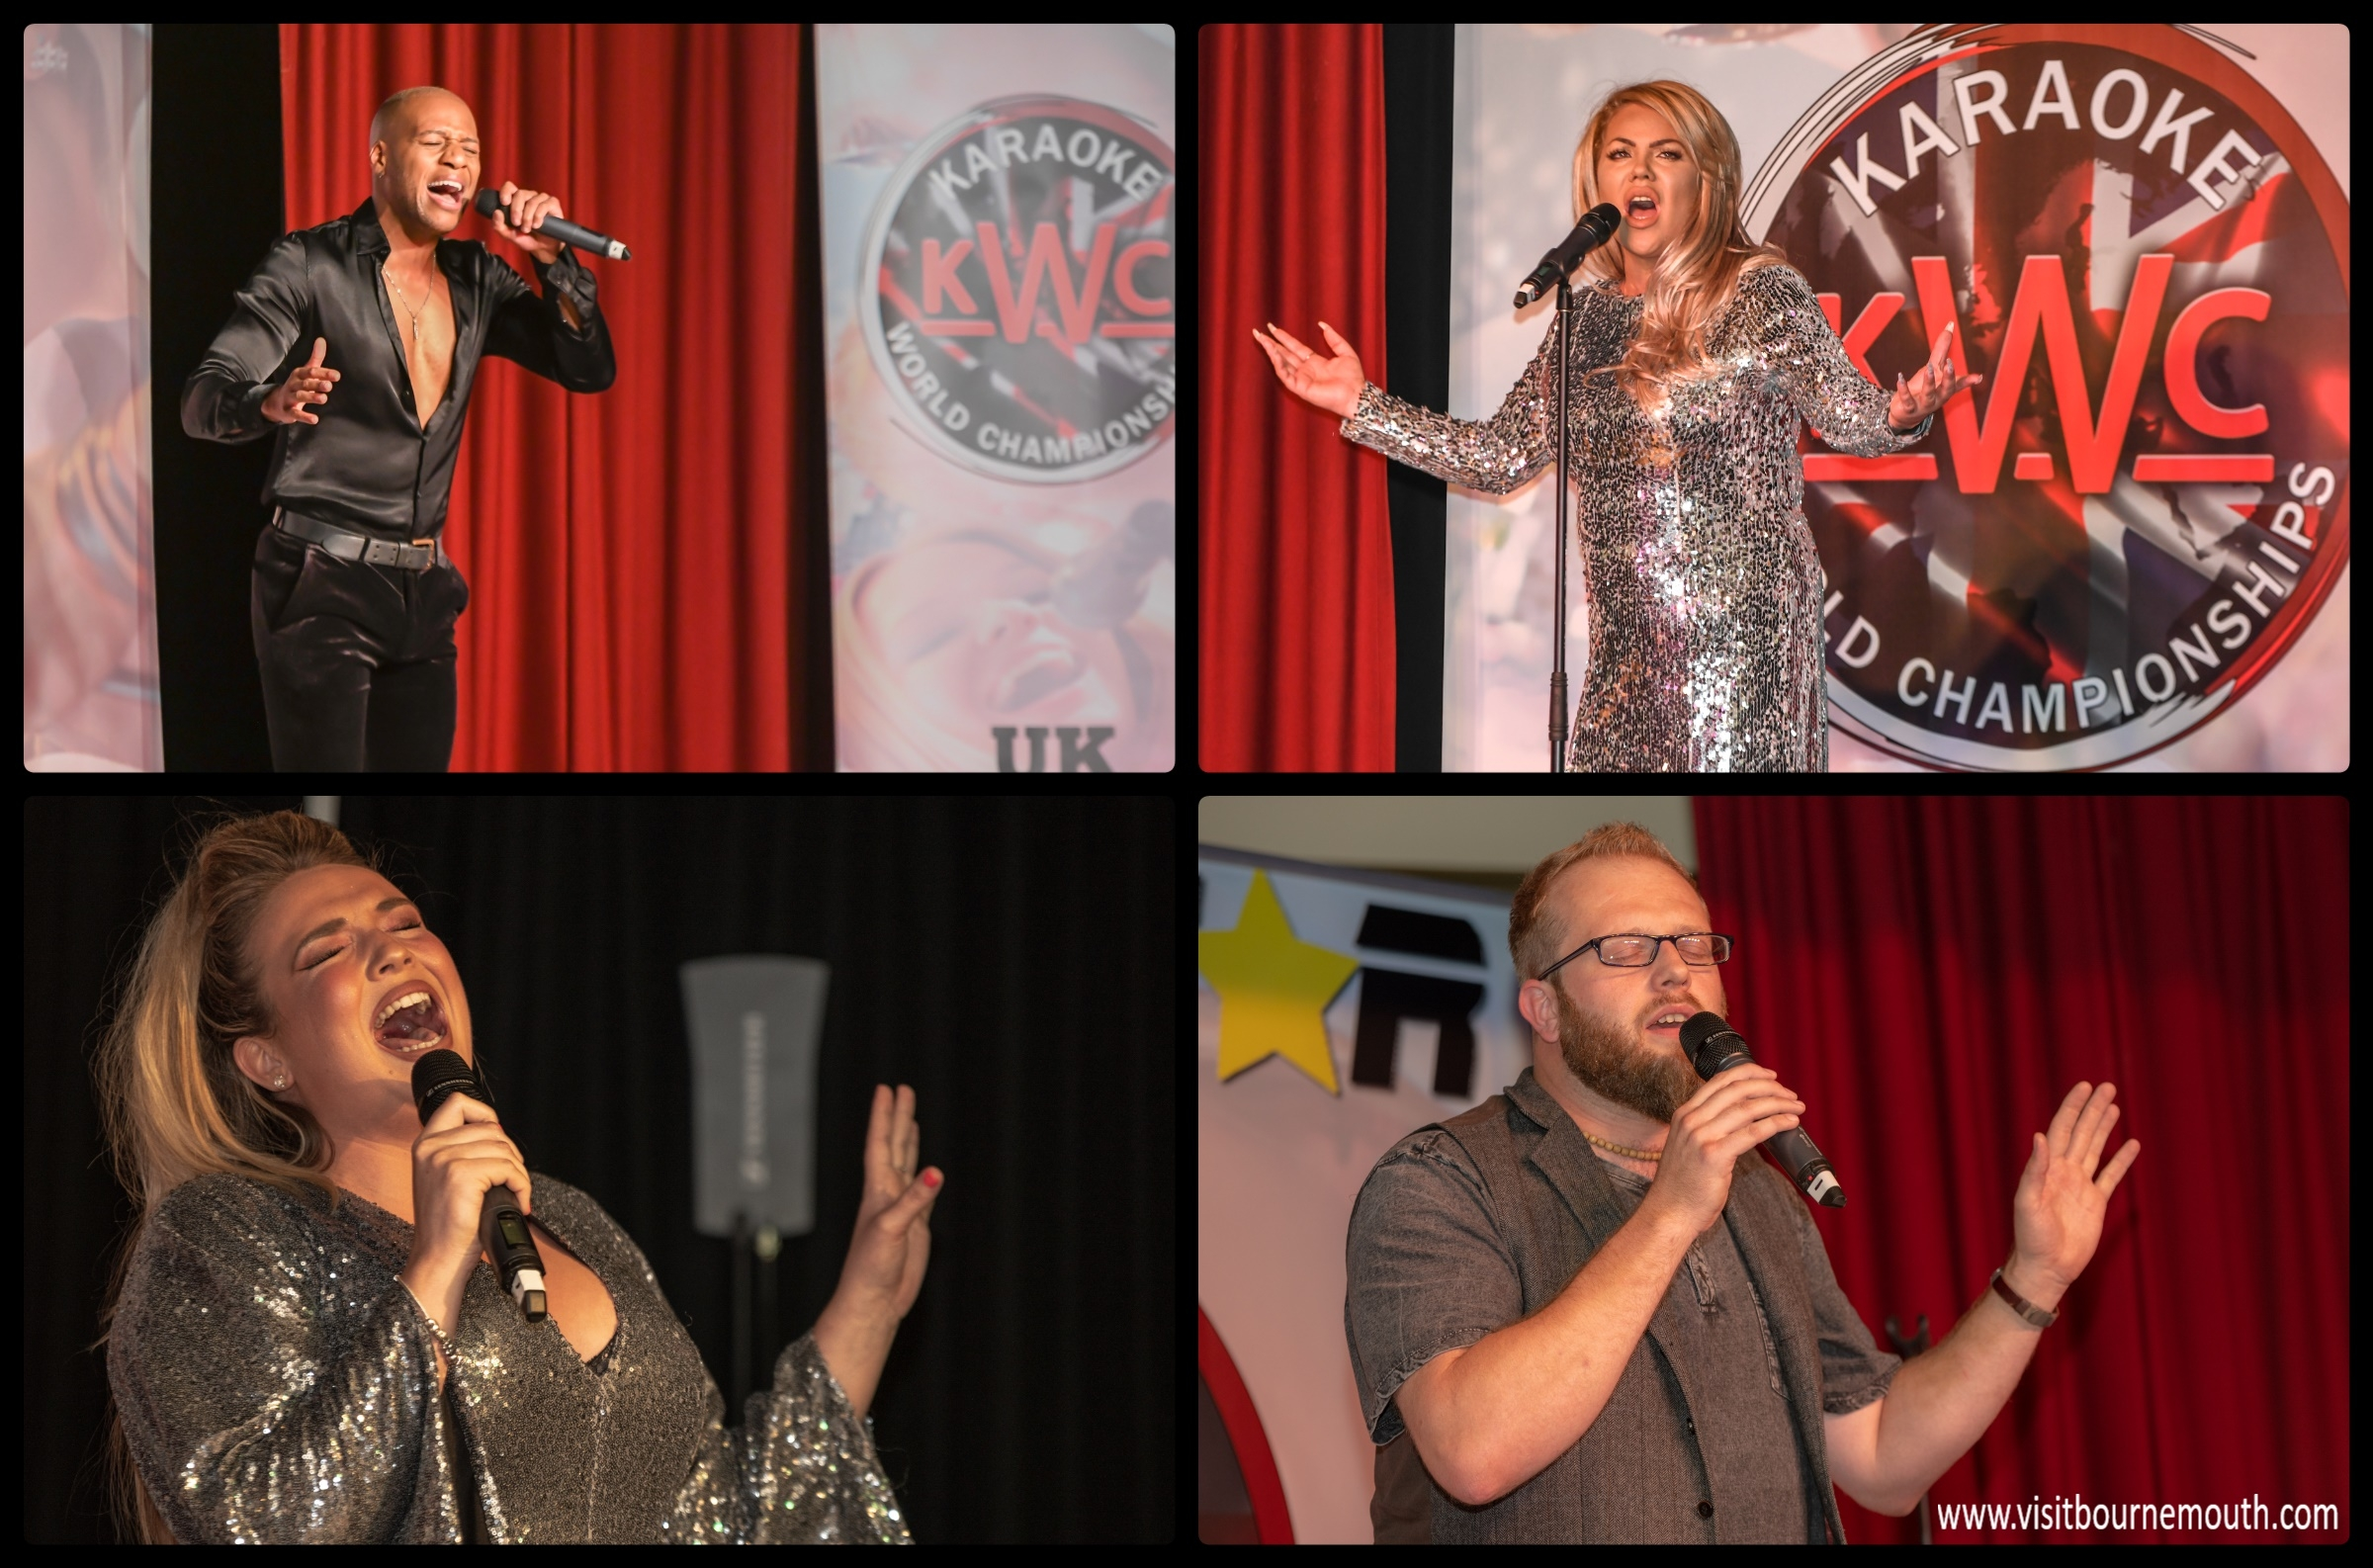 70 photos from the World Karaoke Championship UK Finals